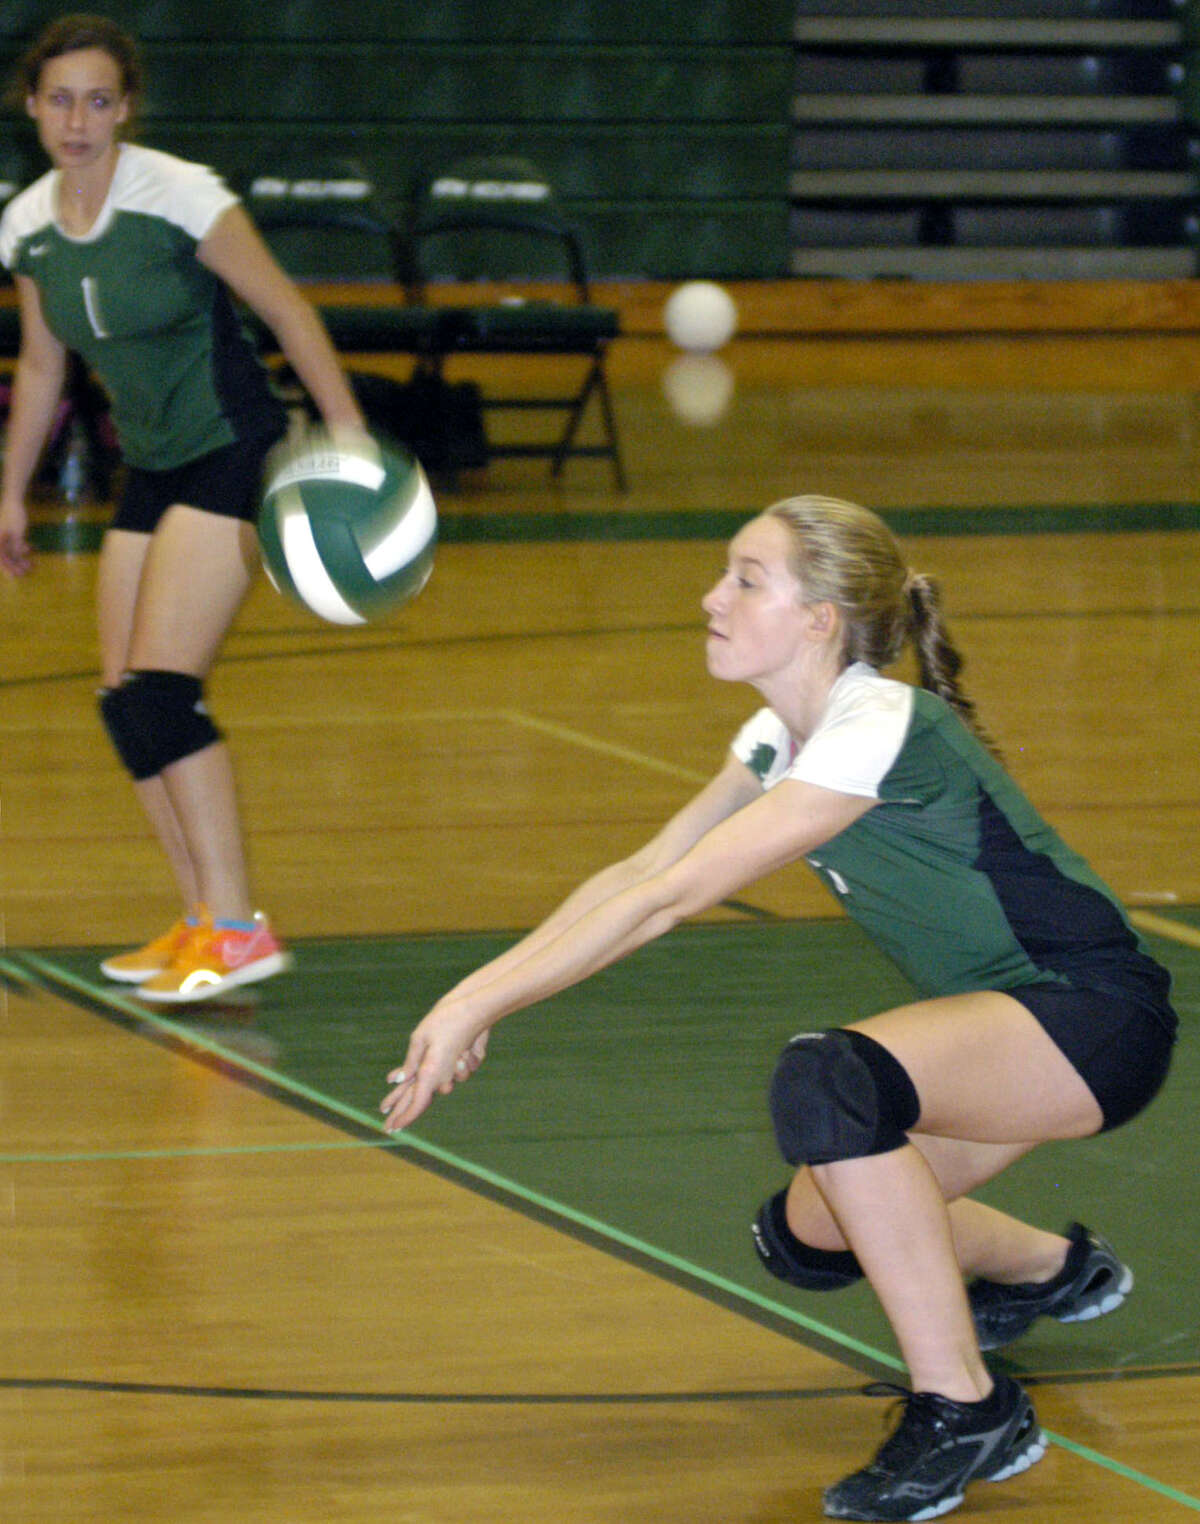 The Green Wave's Stephanie Fleet digs one out as teammate Juliana Fusco looks on during New Milford High School volleyball's victory over visiting Notre Dame of Fairfield, Oct. 5, 2012